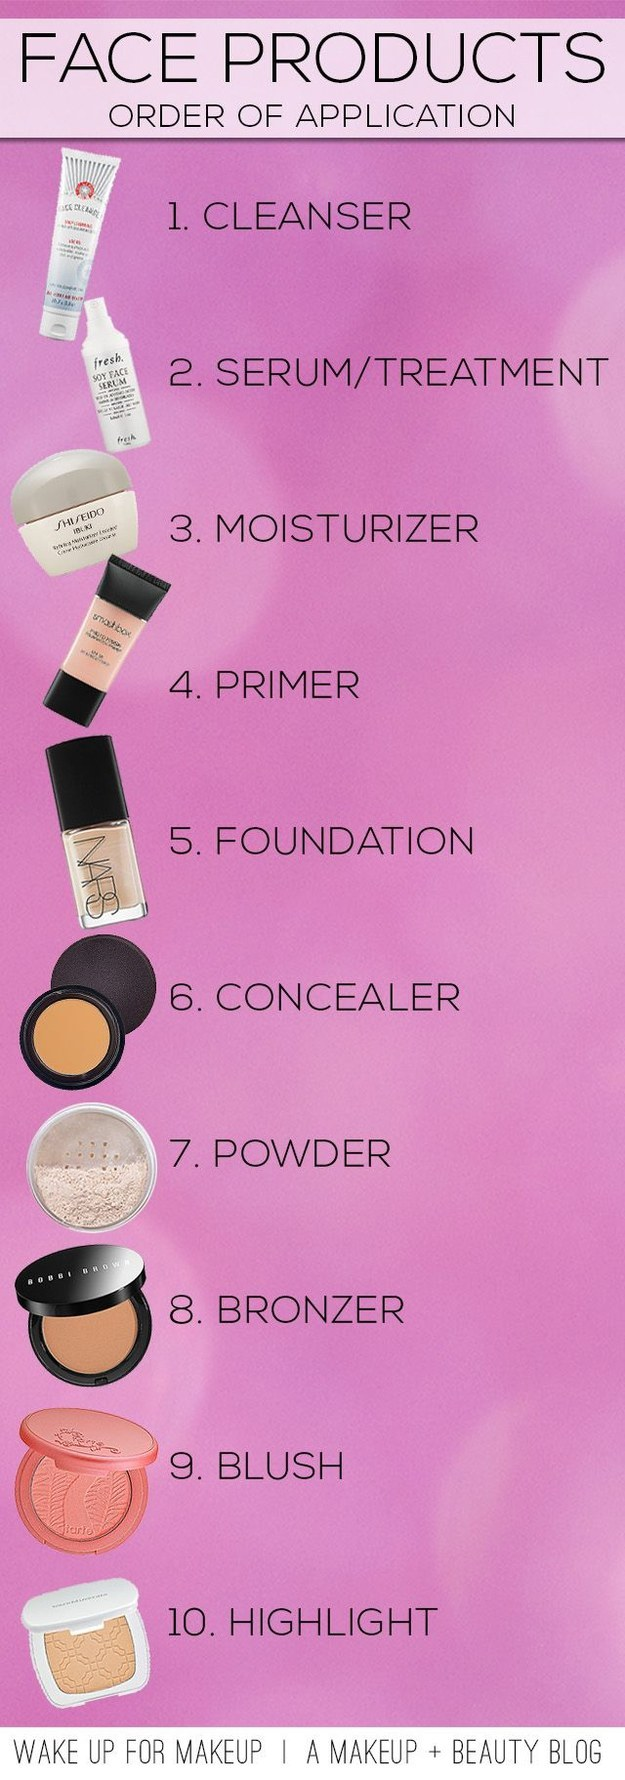 How To Apply Makeup In Order